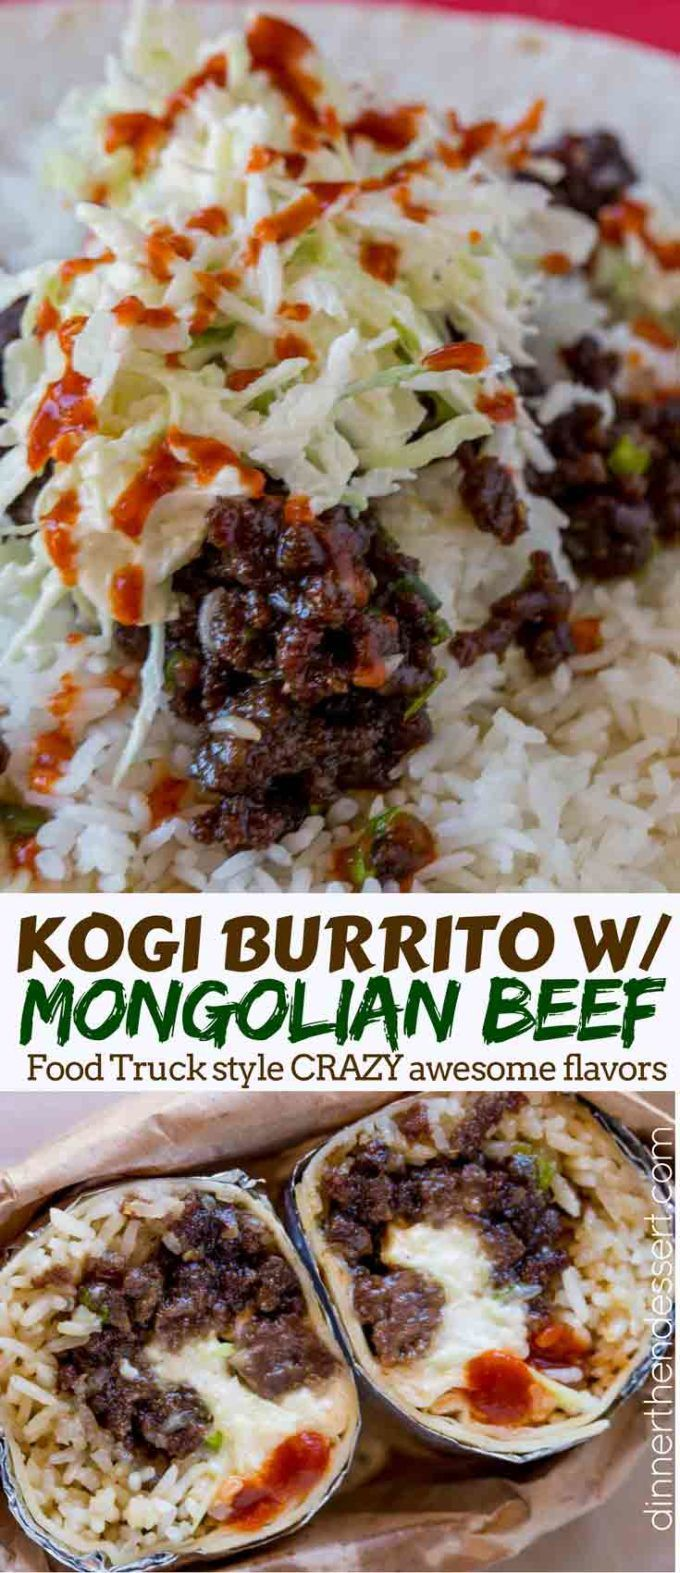 Mongolian Beef Burrito Made With Ground Mongolian Beef, Seasoned Rice, Sriracha And A Quick Asian Mayo Slaw. It's The Best Burrito You've Had Since Kogi Bbq Came On The Scene.